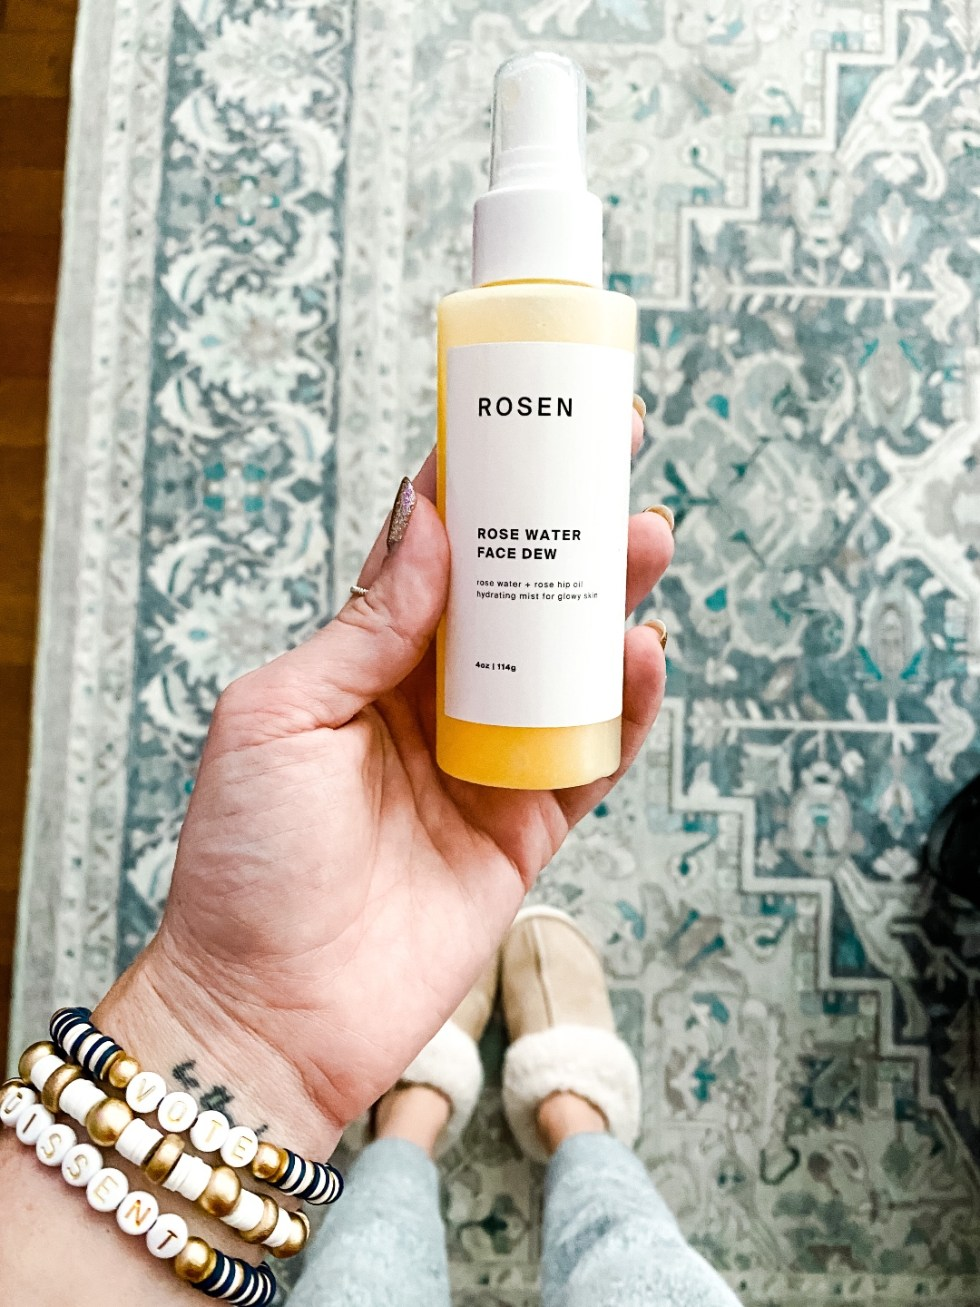 Recent Beauty Favorites: 4 Black Owned Beauty Brands at Nordstrom - I'm Fixin' To - @mbg0112 |Black Owned Beauty by popular N.C. beauty blog, I'm Fixin' To: image of a woman holding a bottle of Rosen Rose Water Face Dew.